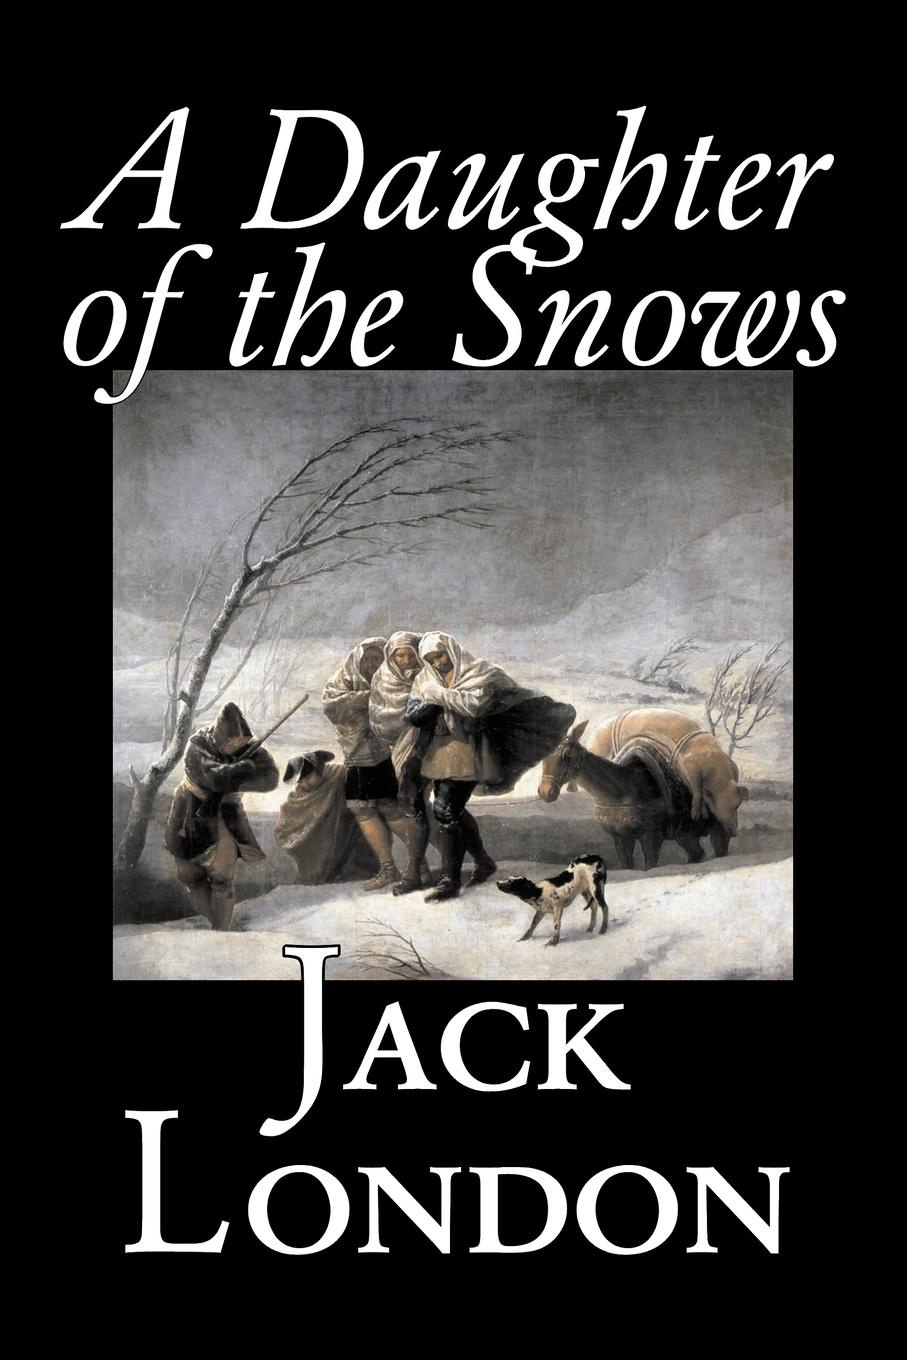 Jack London A Daughter of the Snows by Jack London, Fiction, Action & Adventure jack london a daughter of the snows